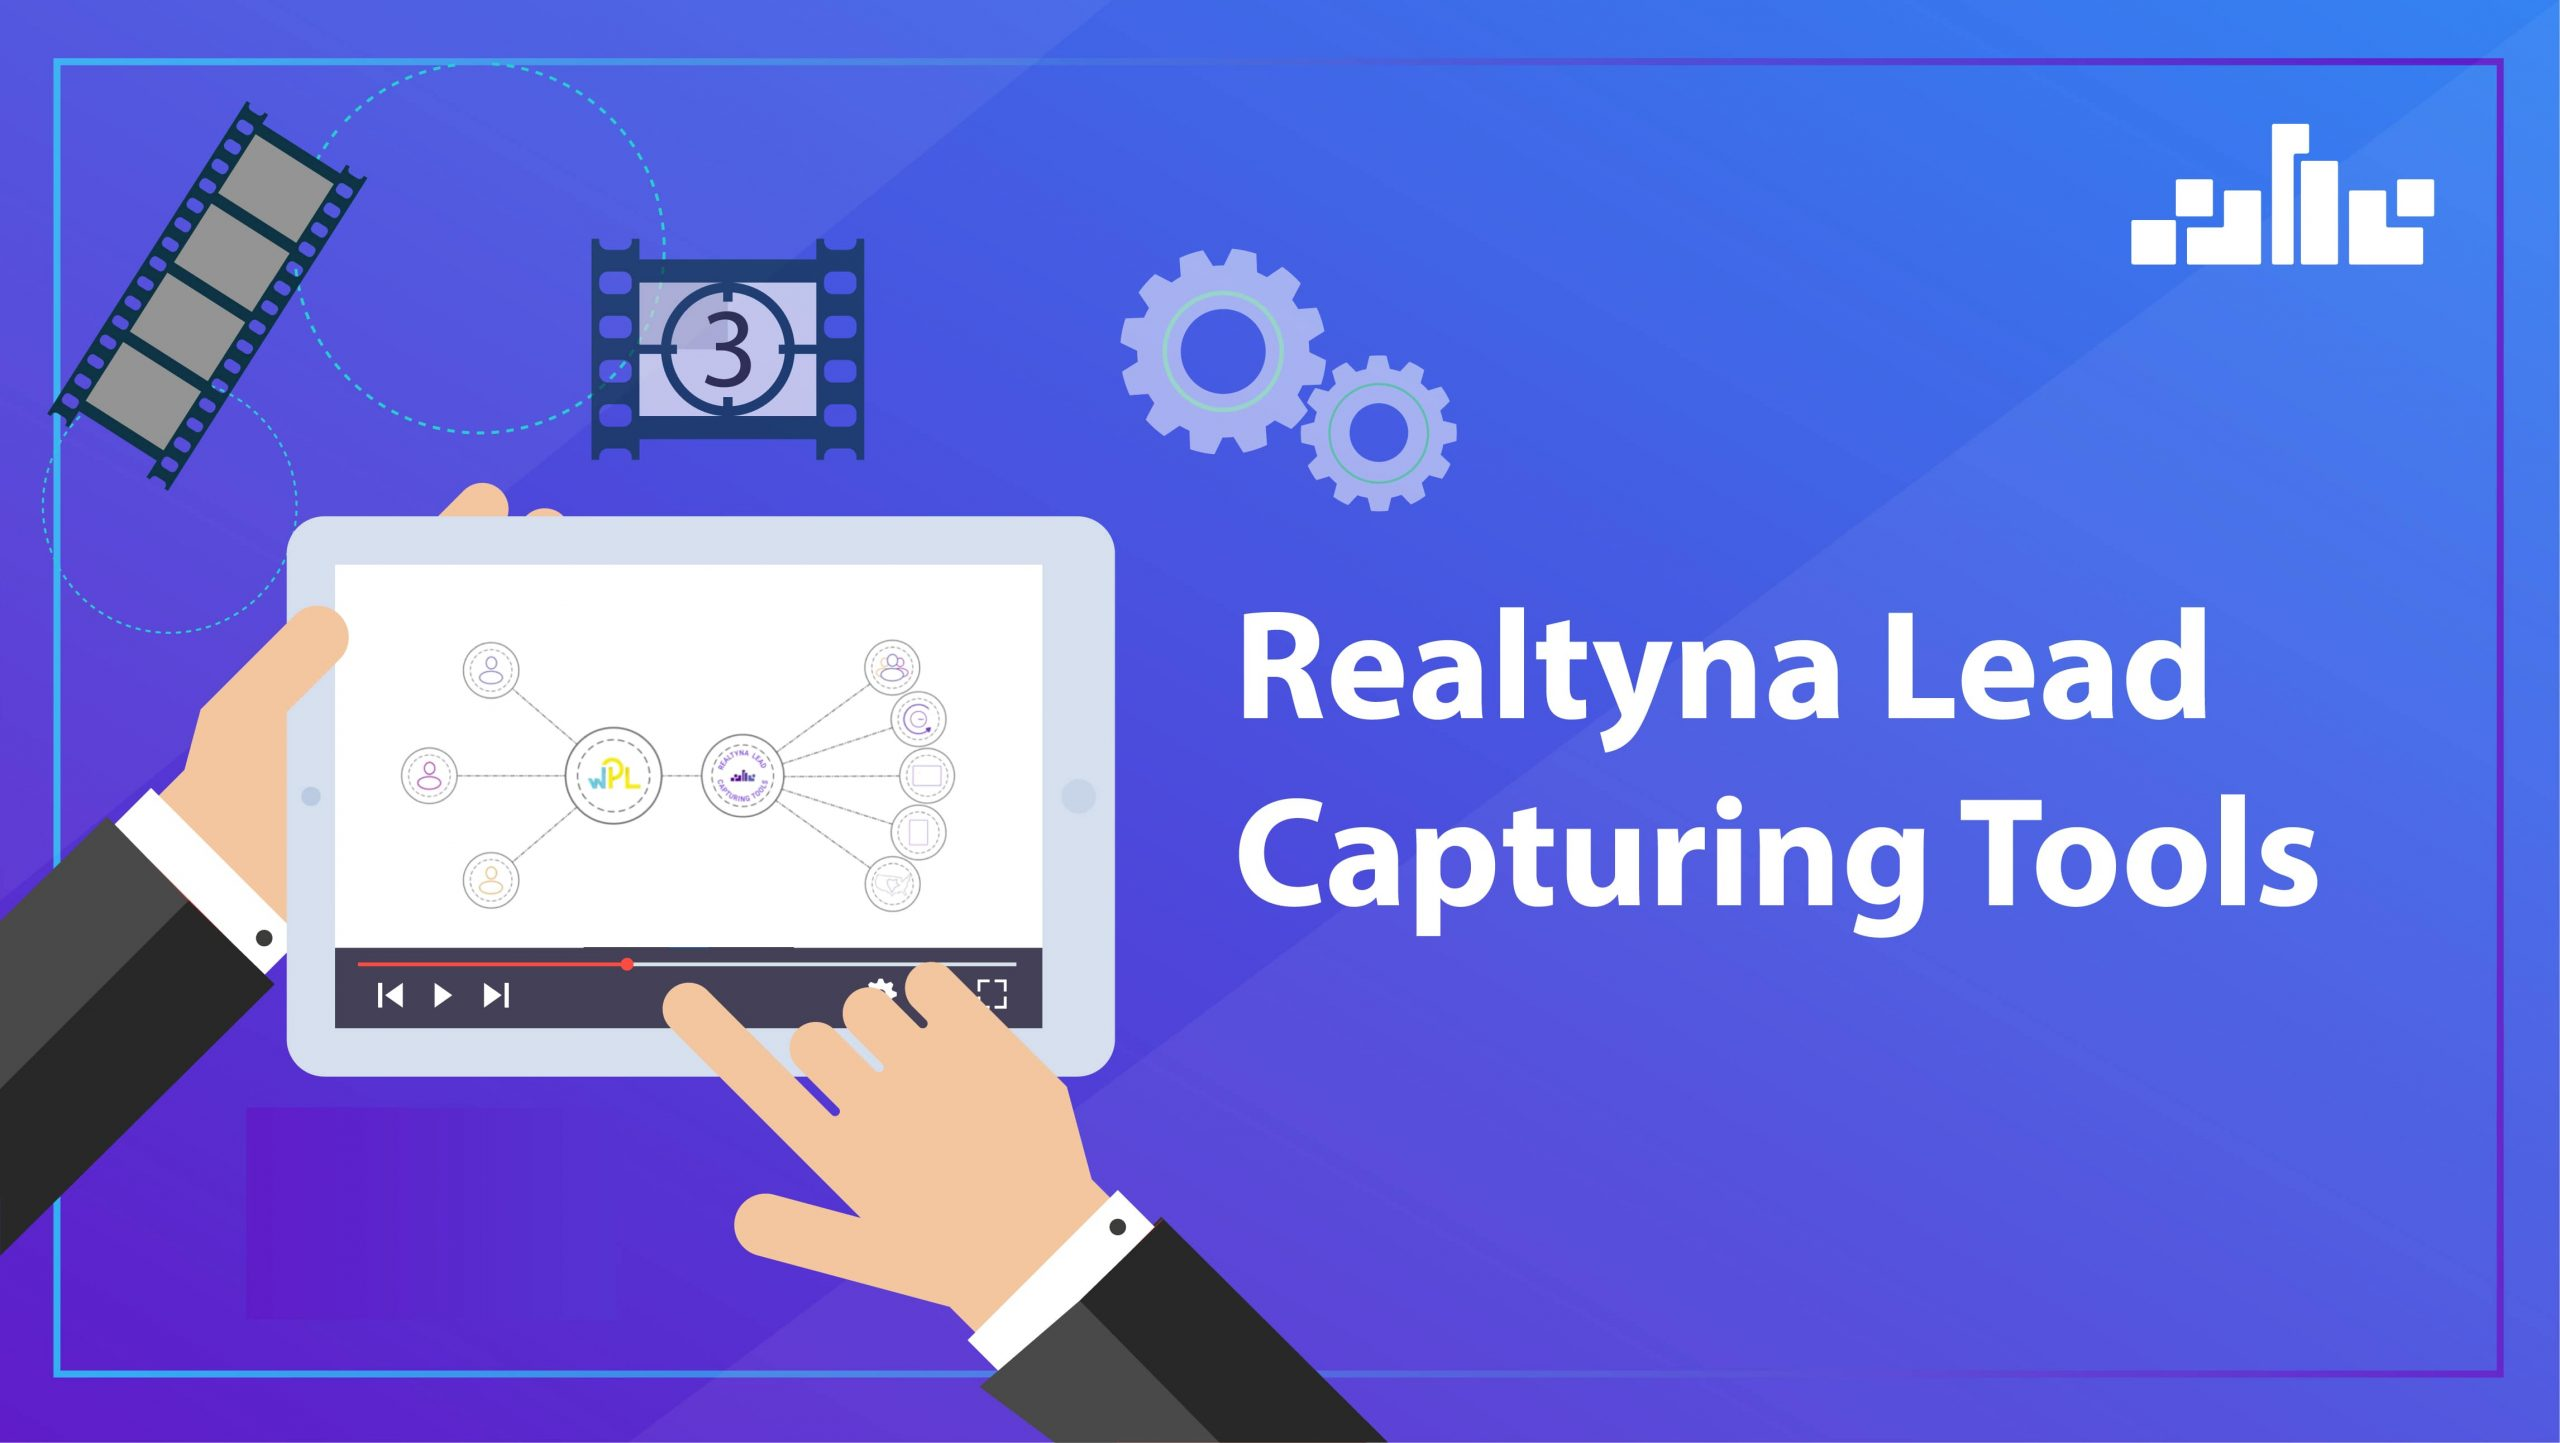 realtynaleadcapturing